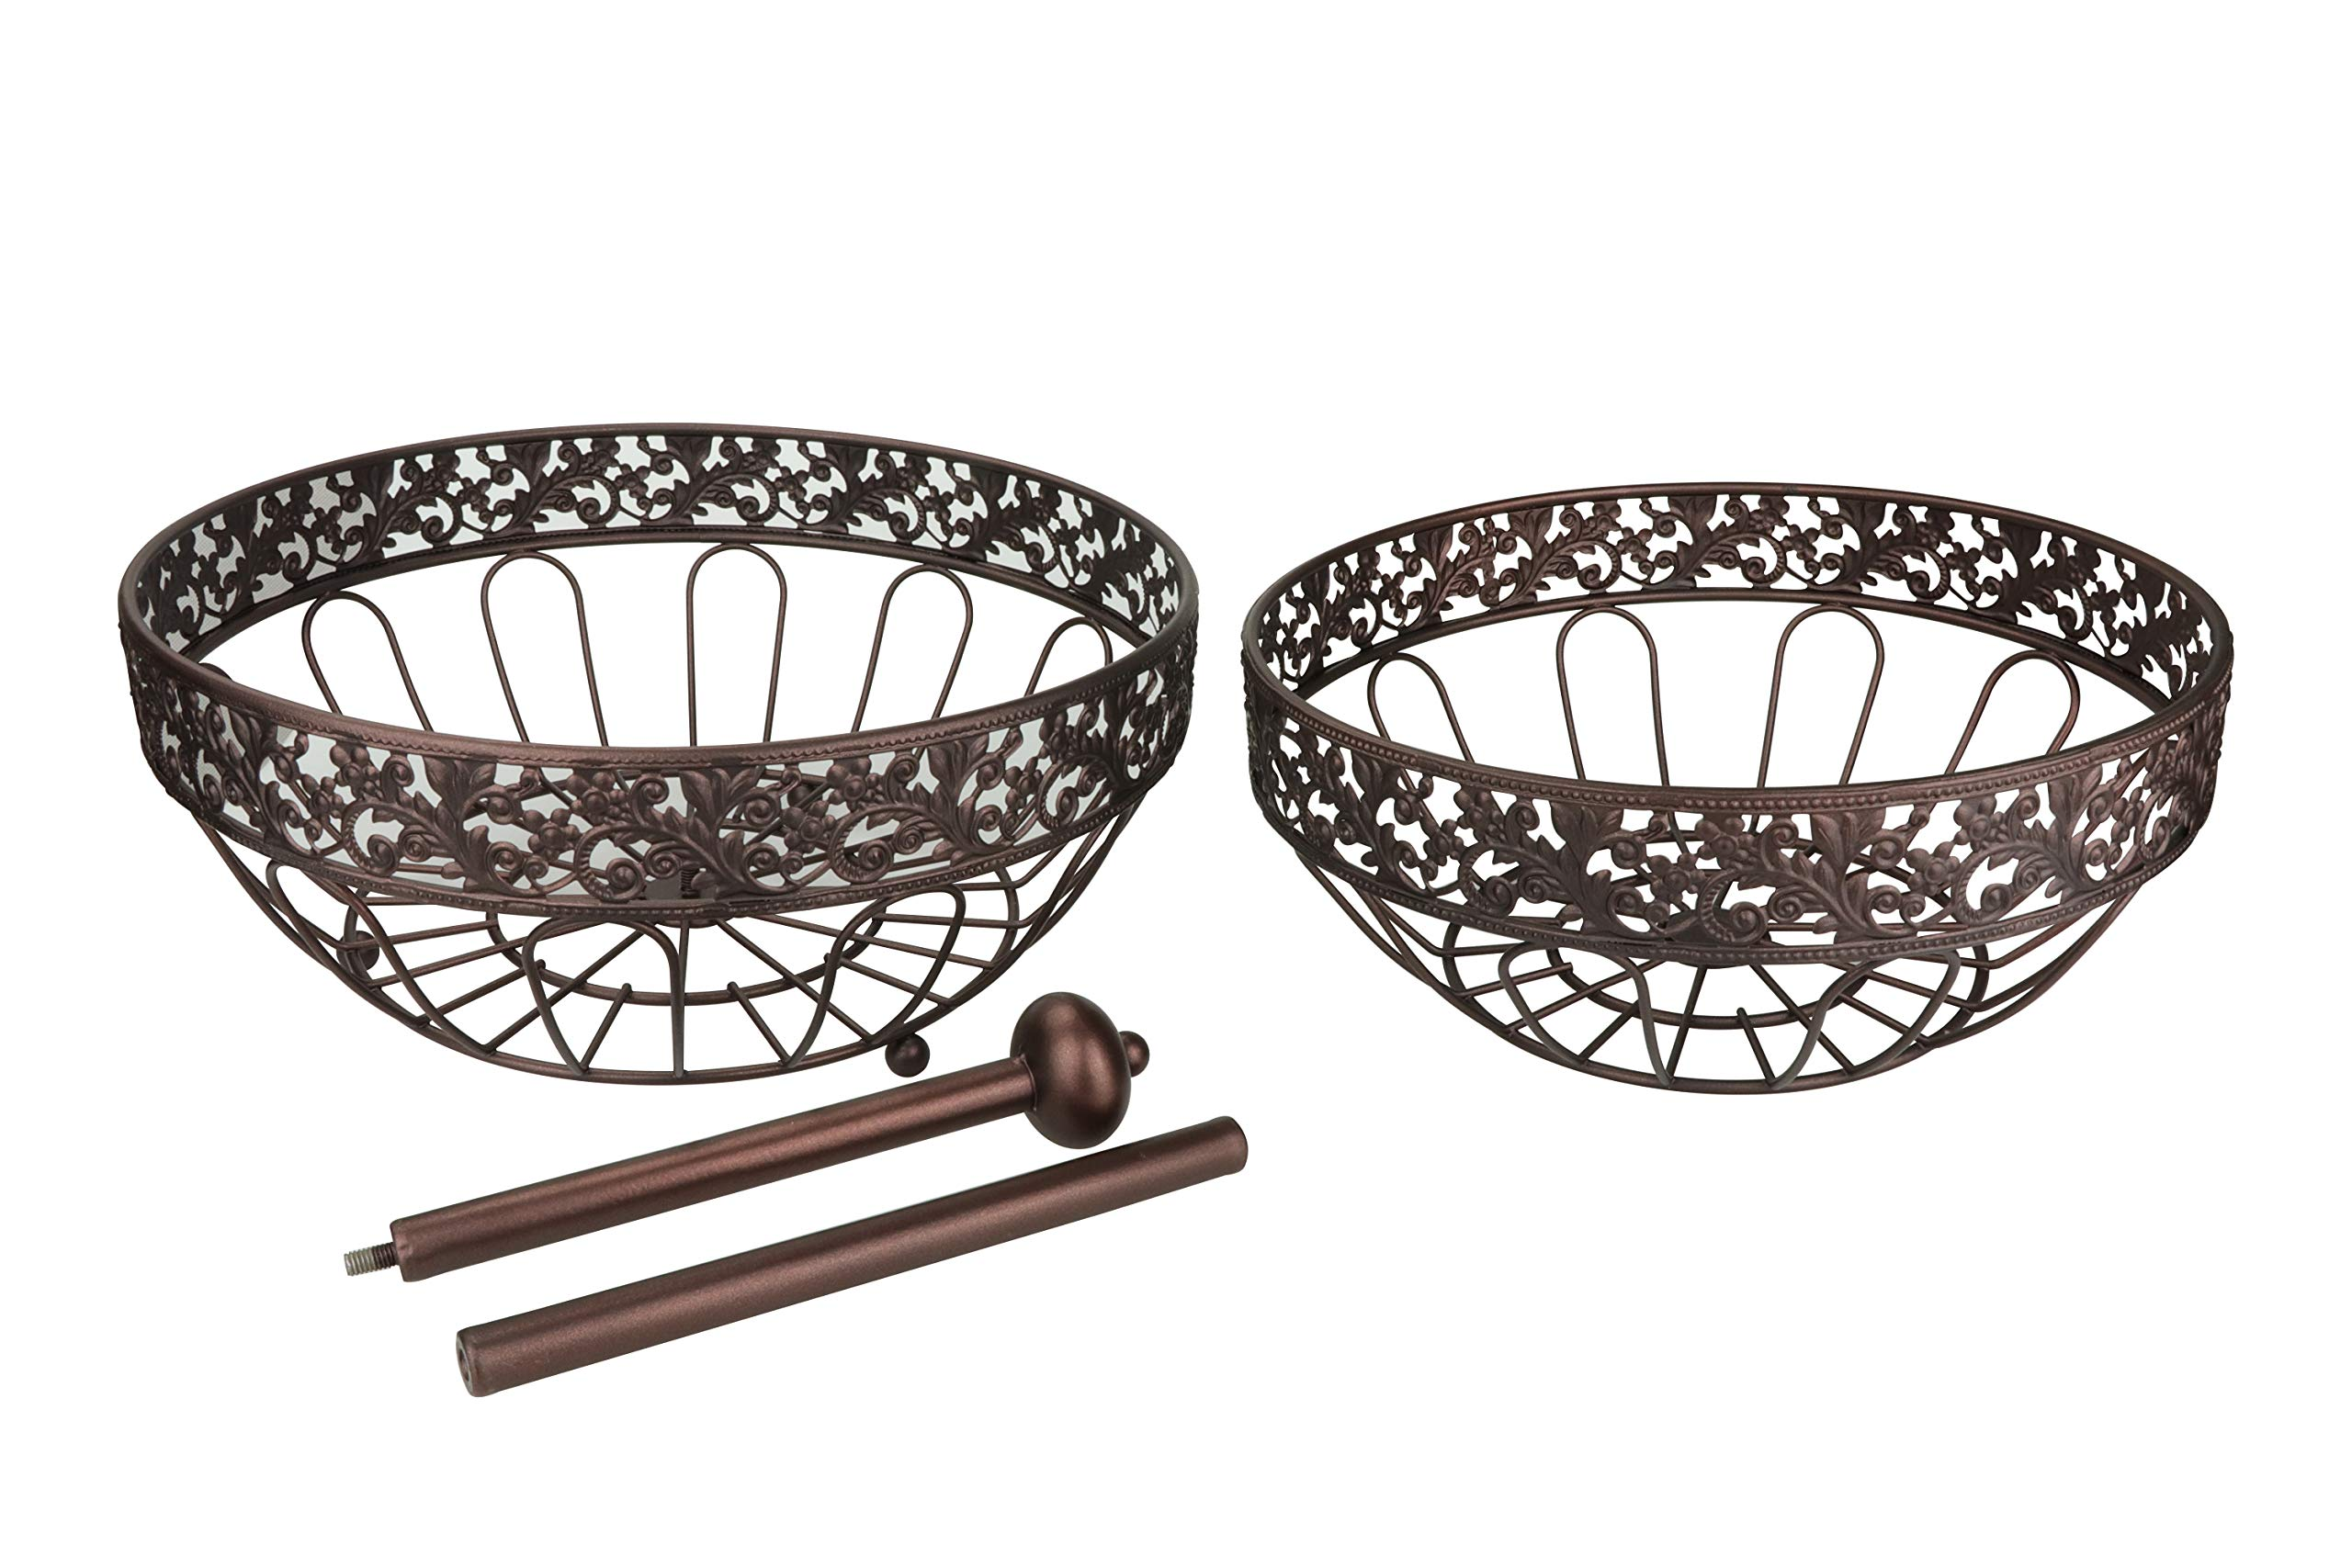 RosyLine 2-Tier Fruit Basket home Fruit Basket Decorative Display Stand, Multi purpose bowl, Home accent furnishings by DongJiang (Image #5)